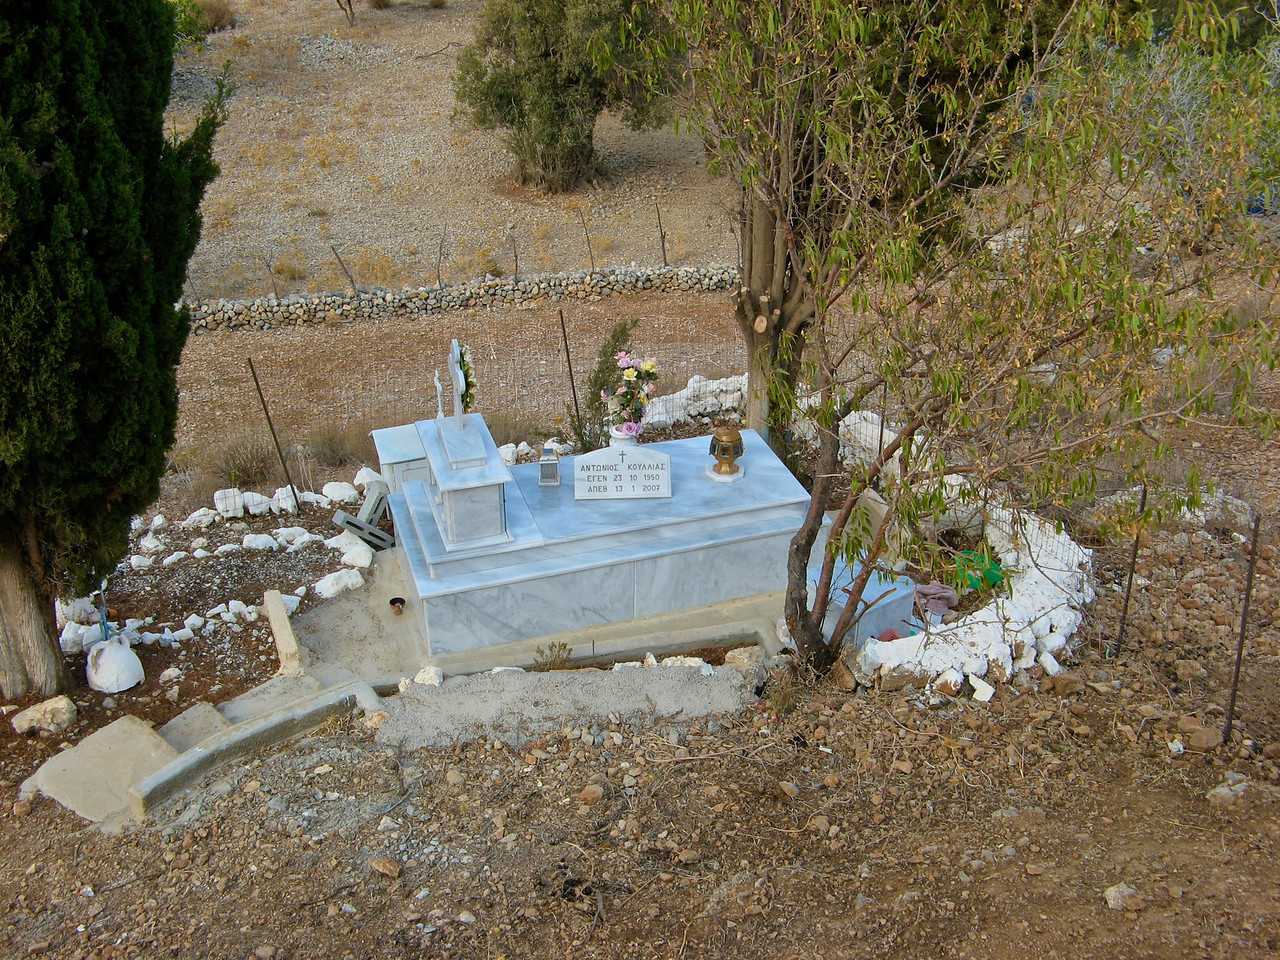 Along the way, we pass the gravesite of a former resident.